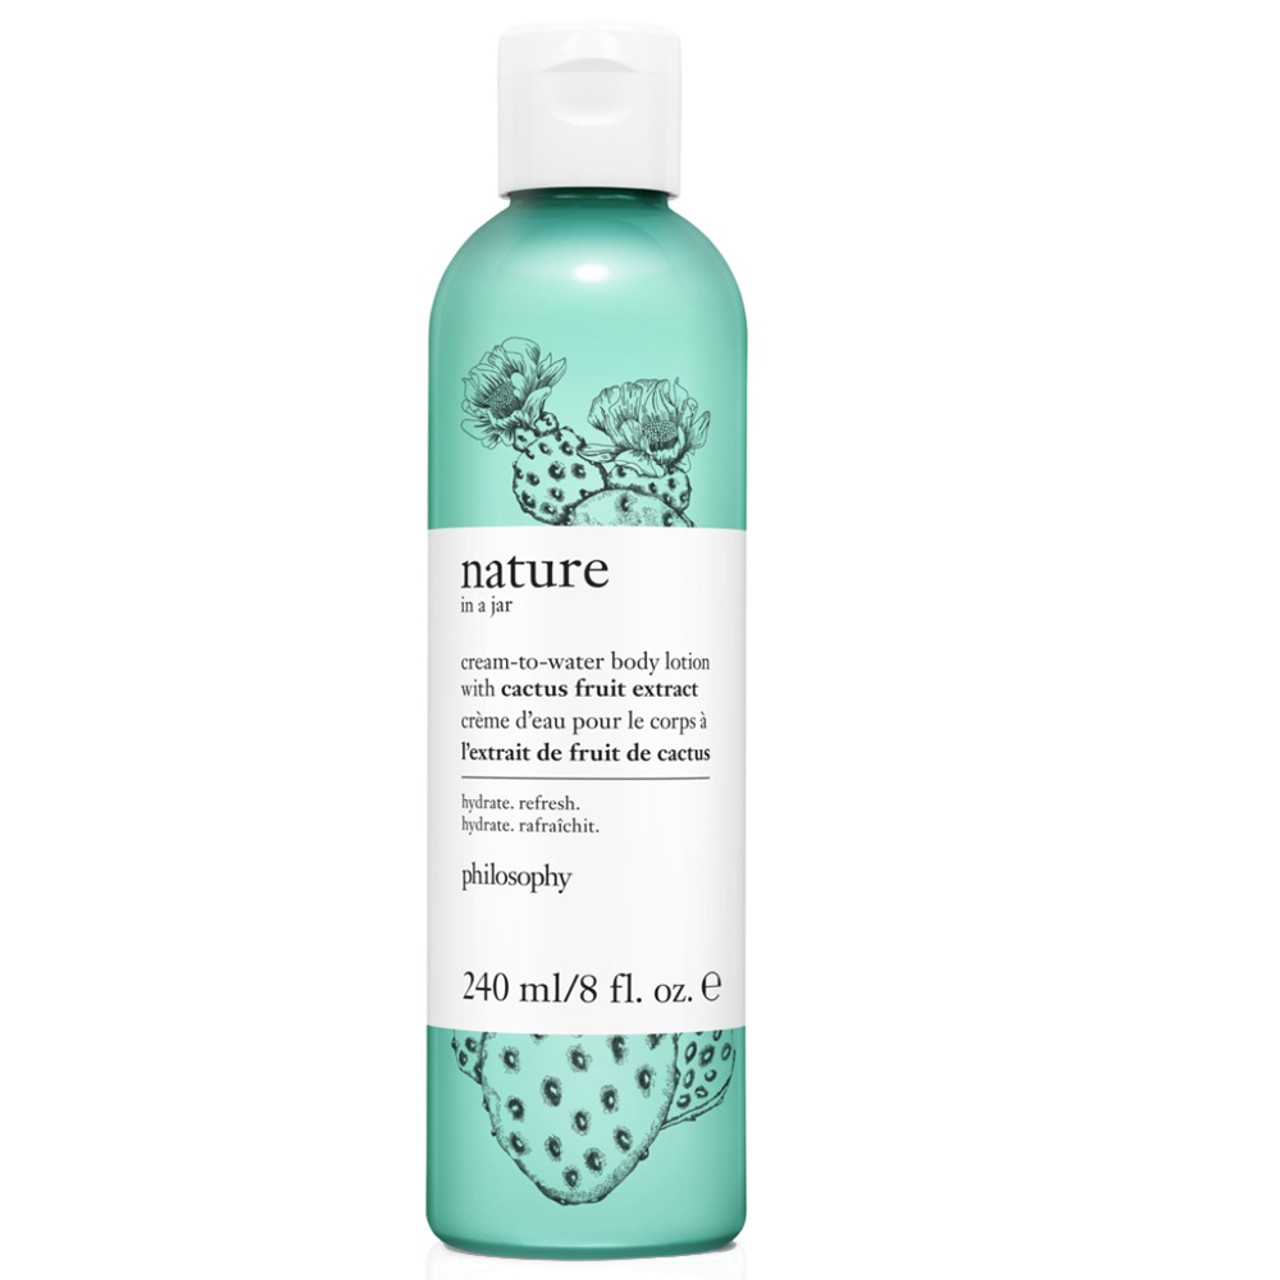 philosophy Nature in a Jar Cream-To-Water Body Lotion with Cactus Fruit Extract BeautifiedYou.com